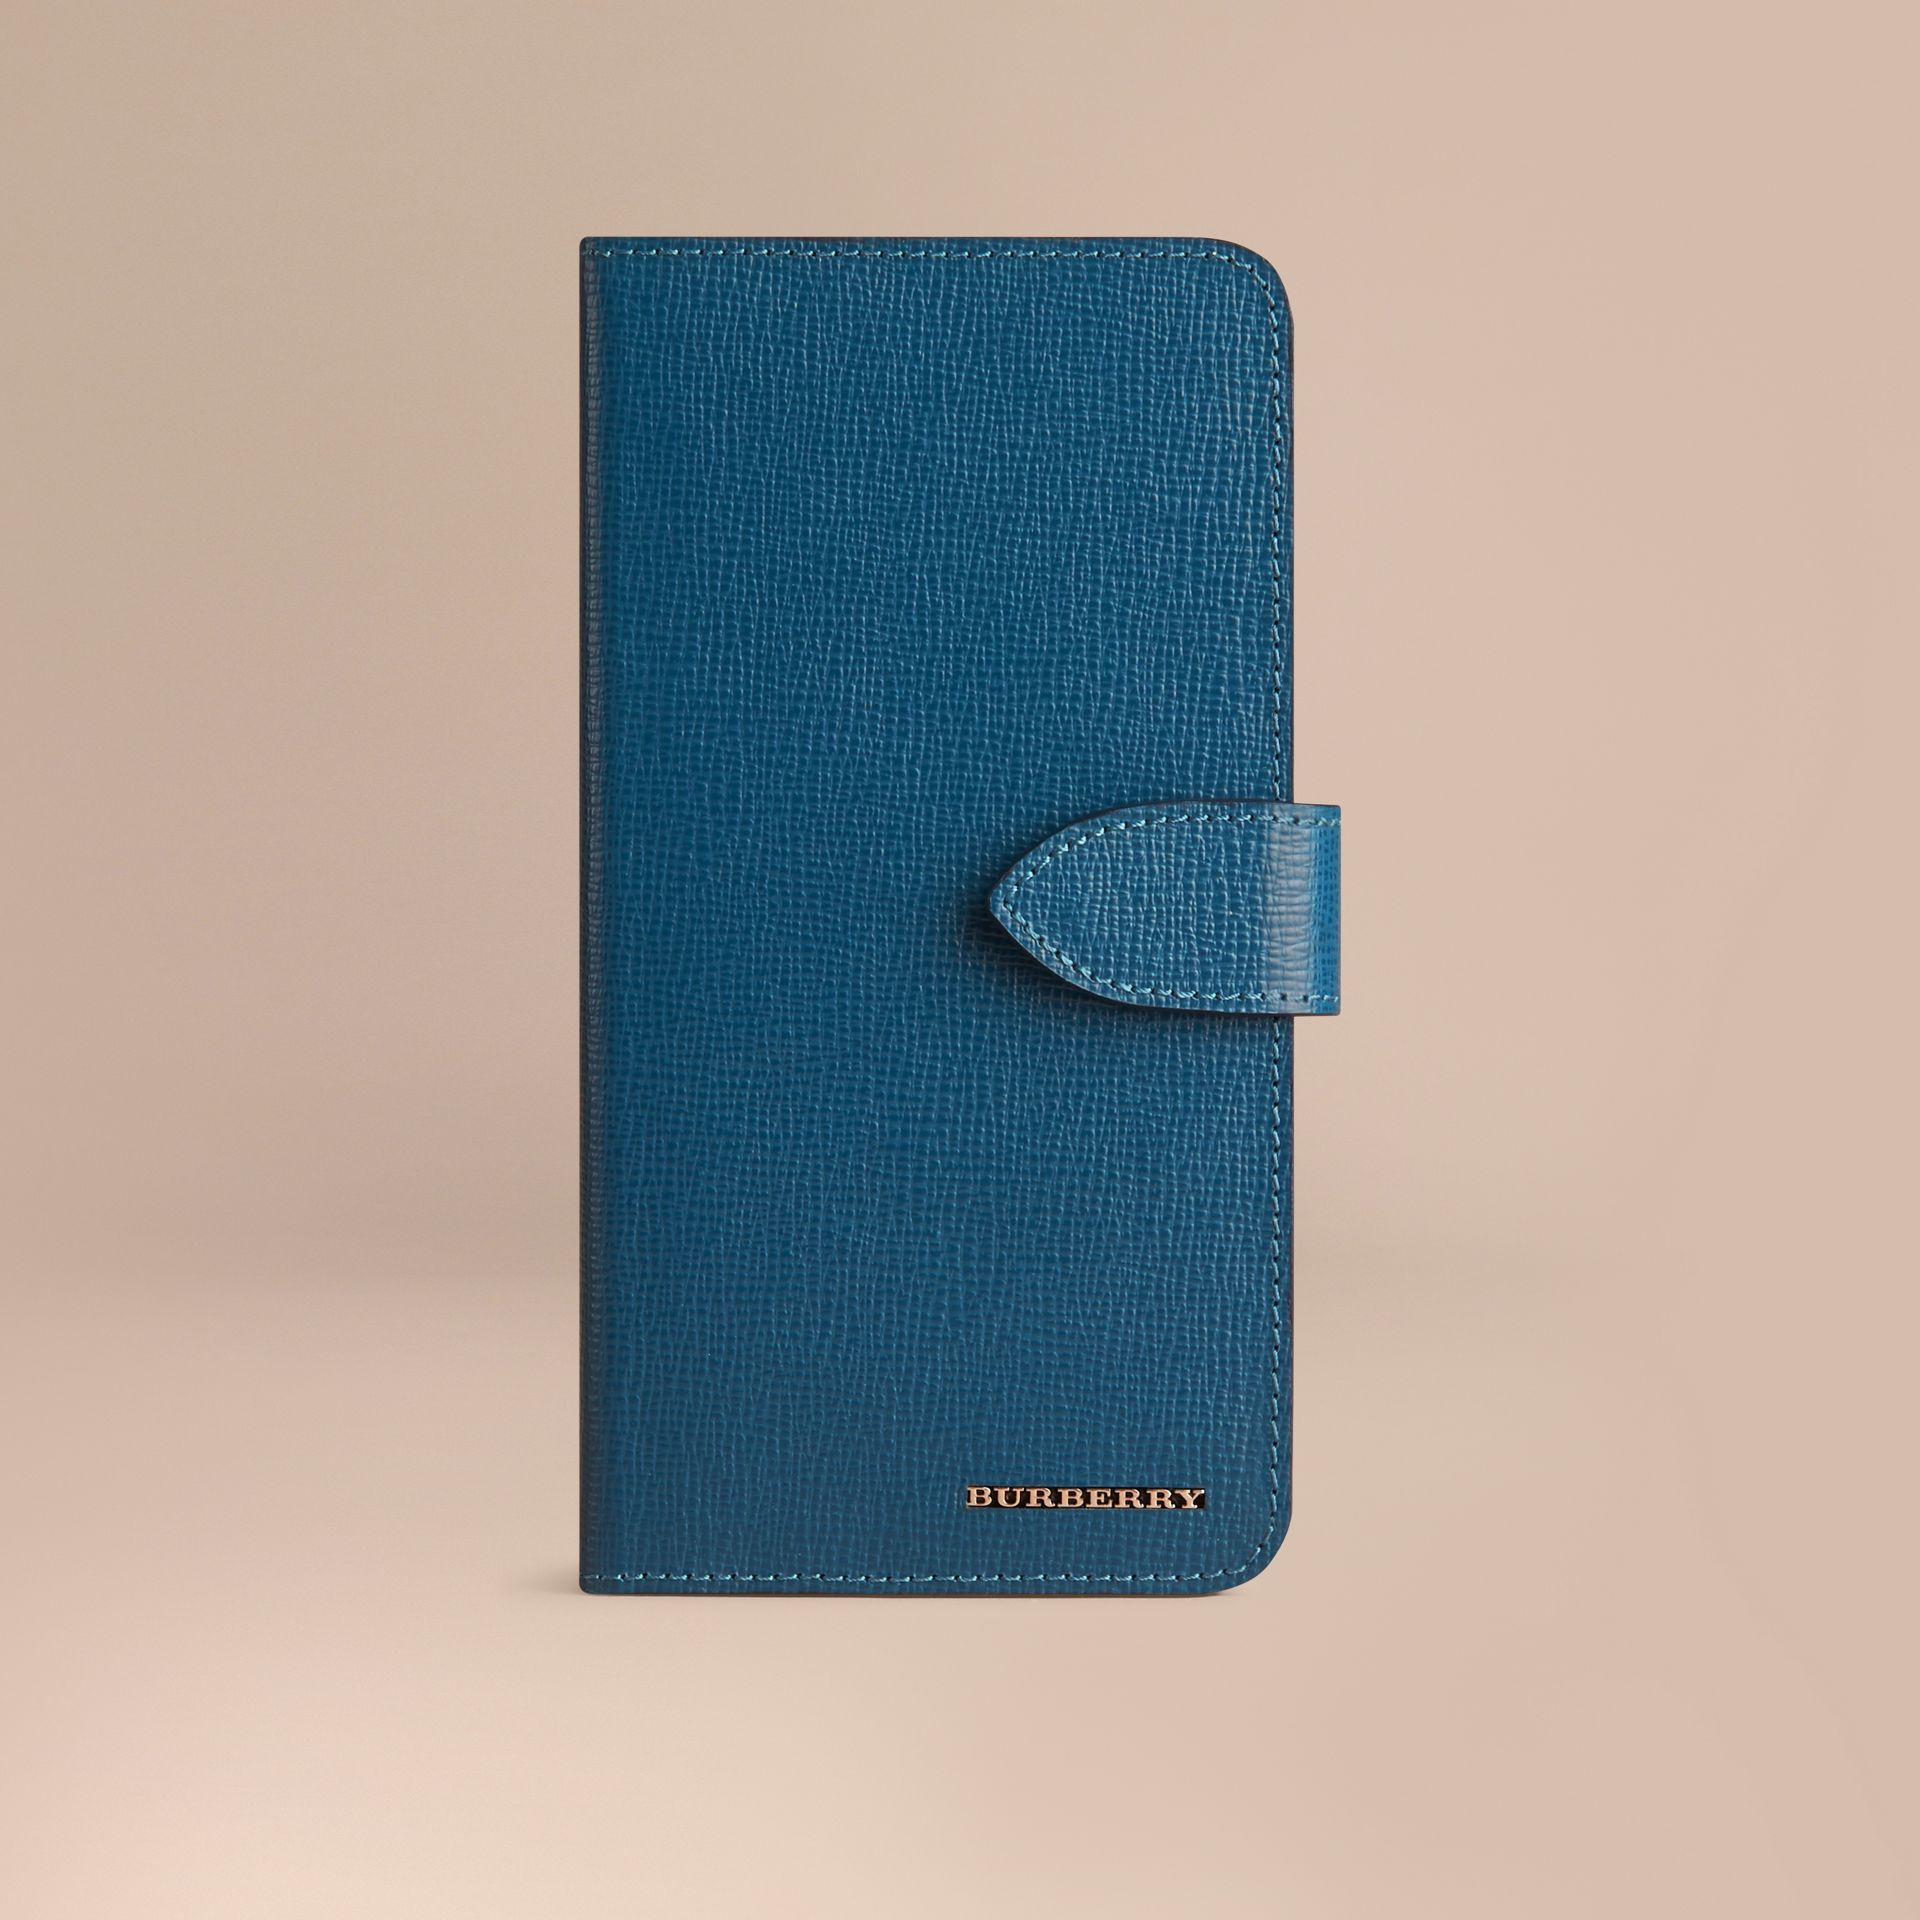 Blu minerale Custodia a libro in pelle London per iPhone 6 Plus Blu Minerale - immagine della galleria 1